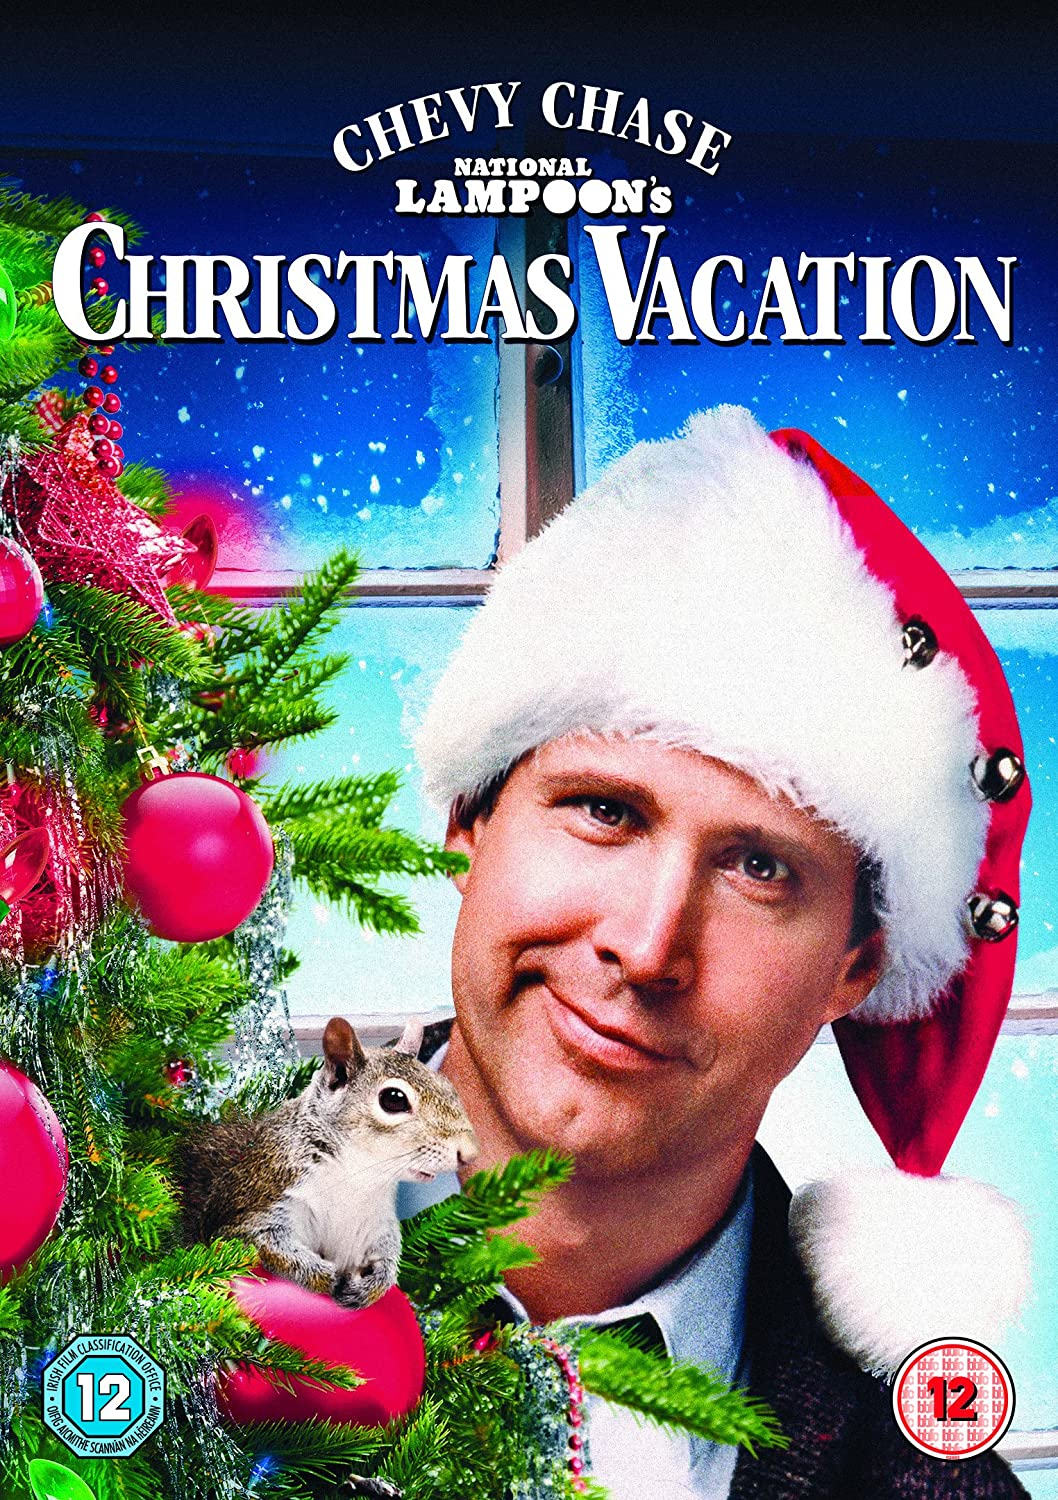 Chevy Chase Christmas Vacation: National Lampoon's Christmas Vacation [DVD] [1989